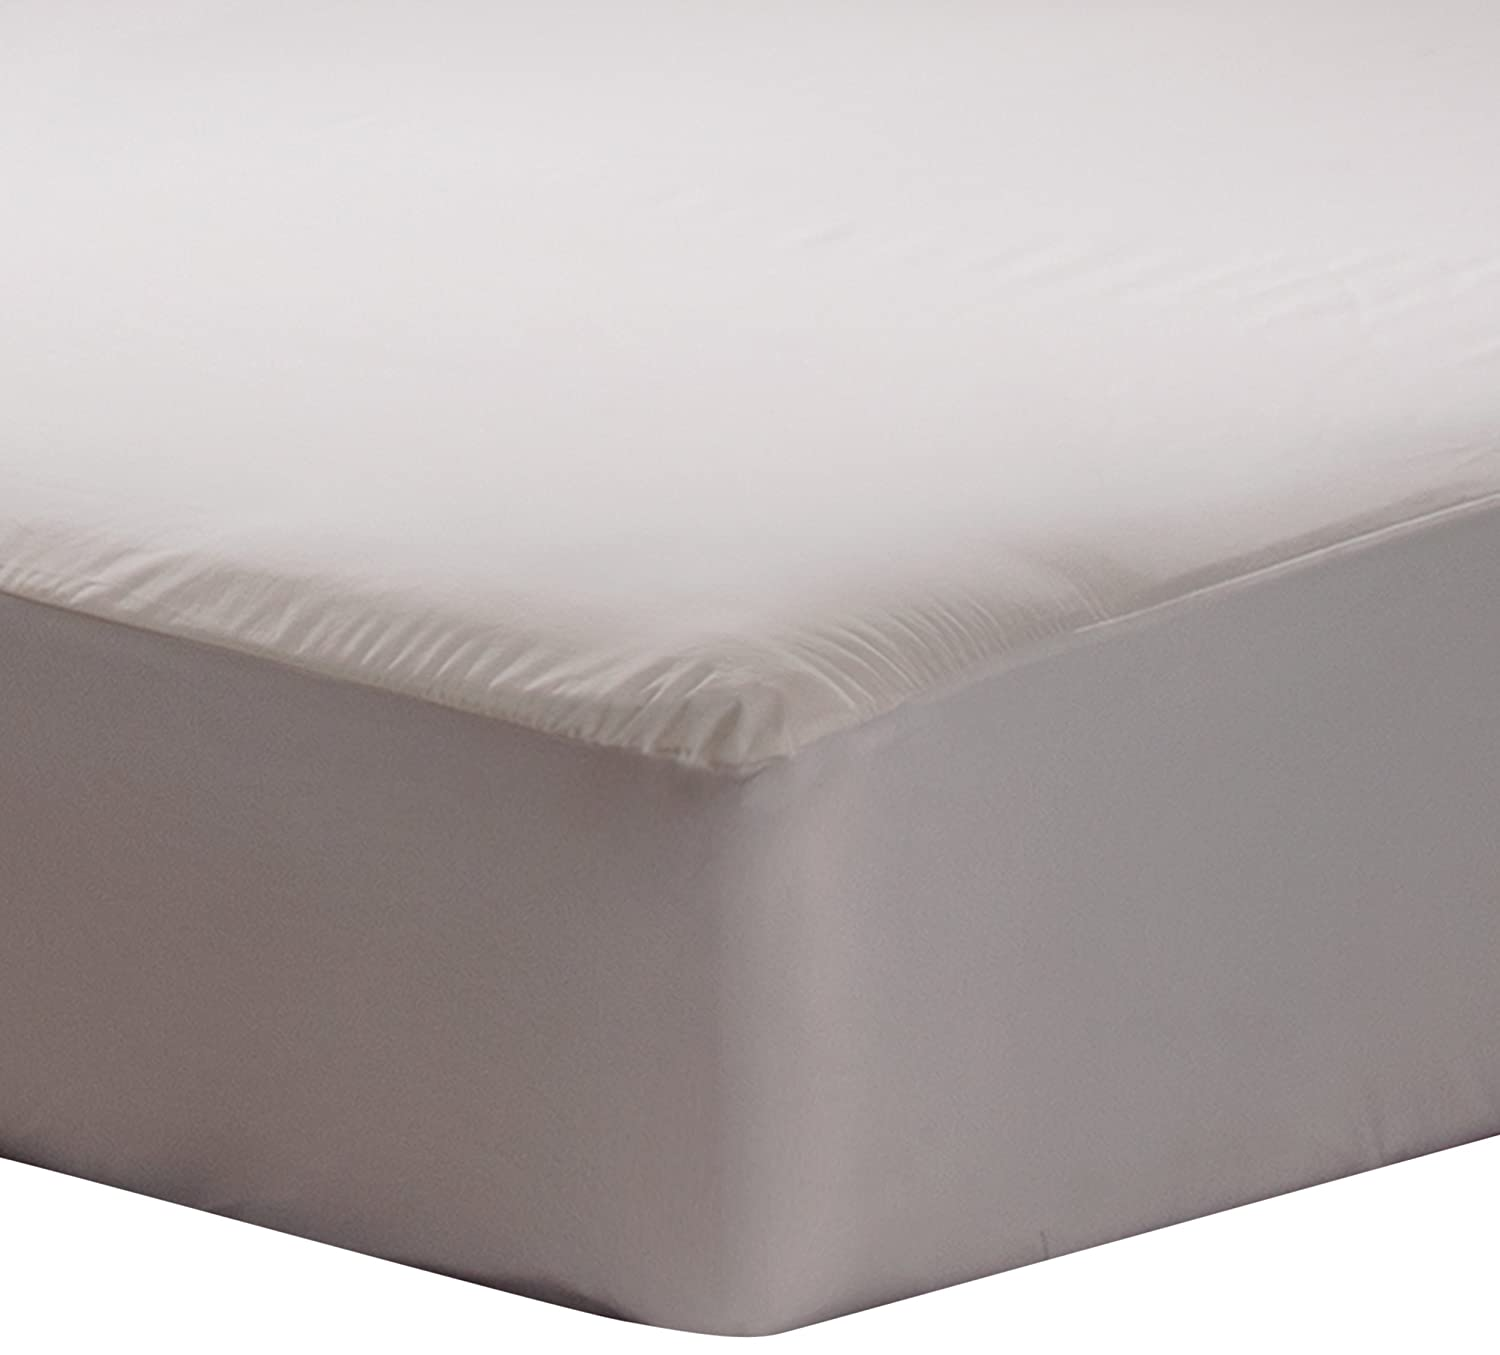 fitted mattress protector. Amazon.com: Sealy Stain Protection Fitted Mattress Protector: Home \u0026 Kitchen Protector H